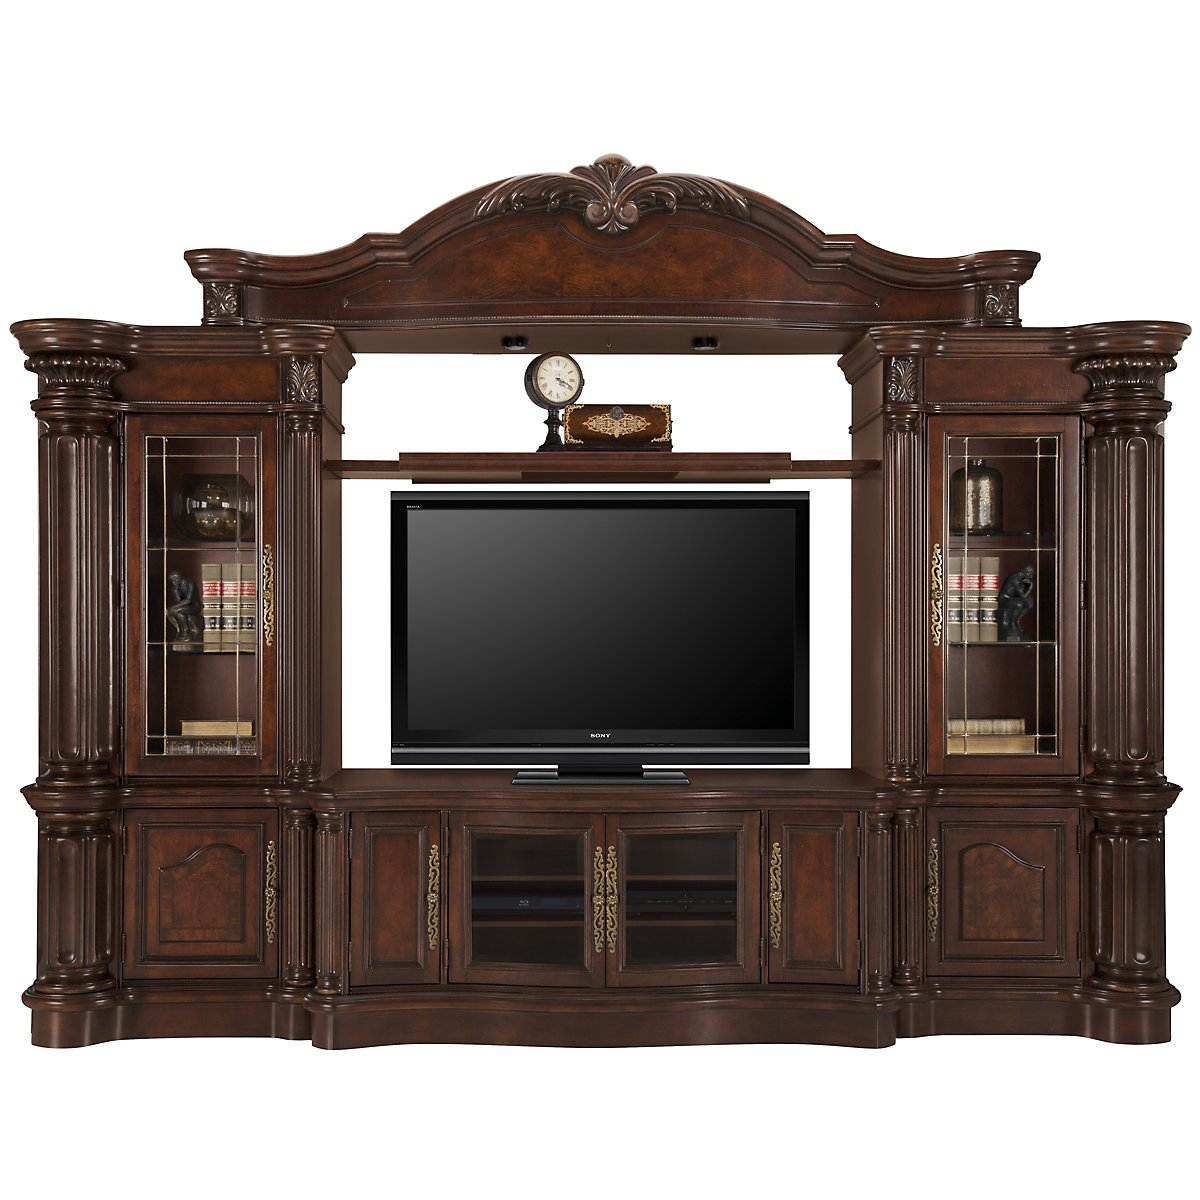 Regal3 Dark Tone Wood Large Entertainment Wall